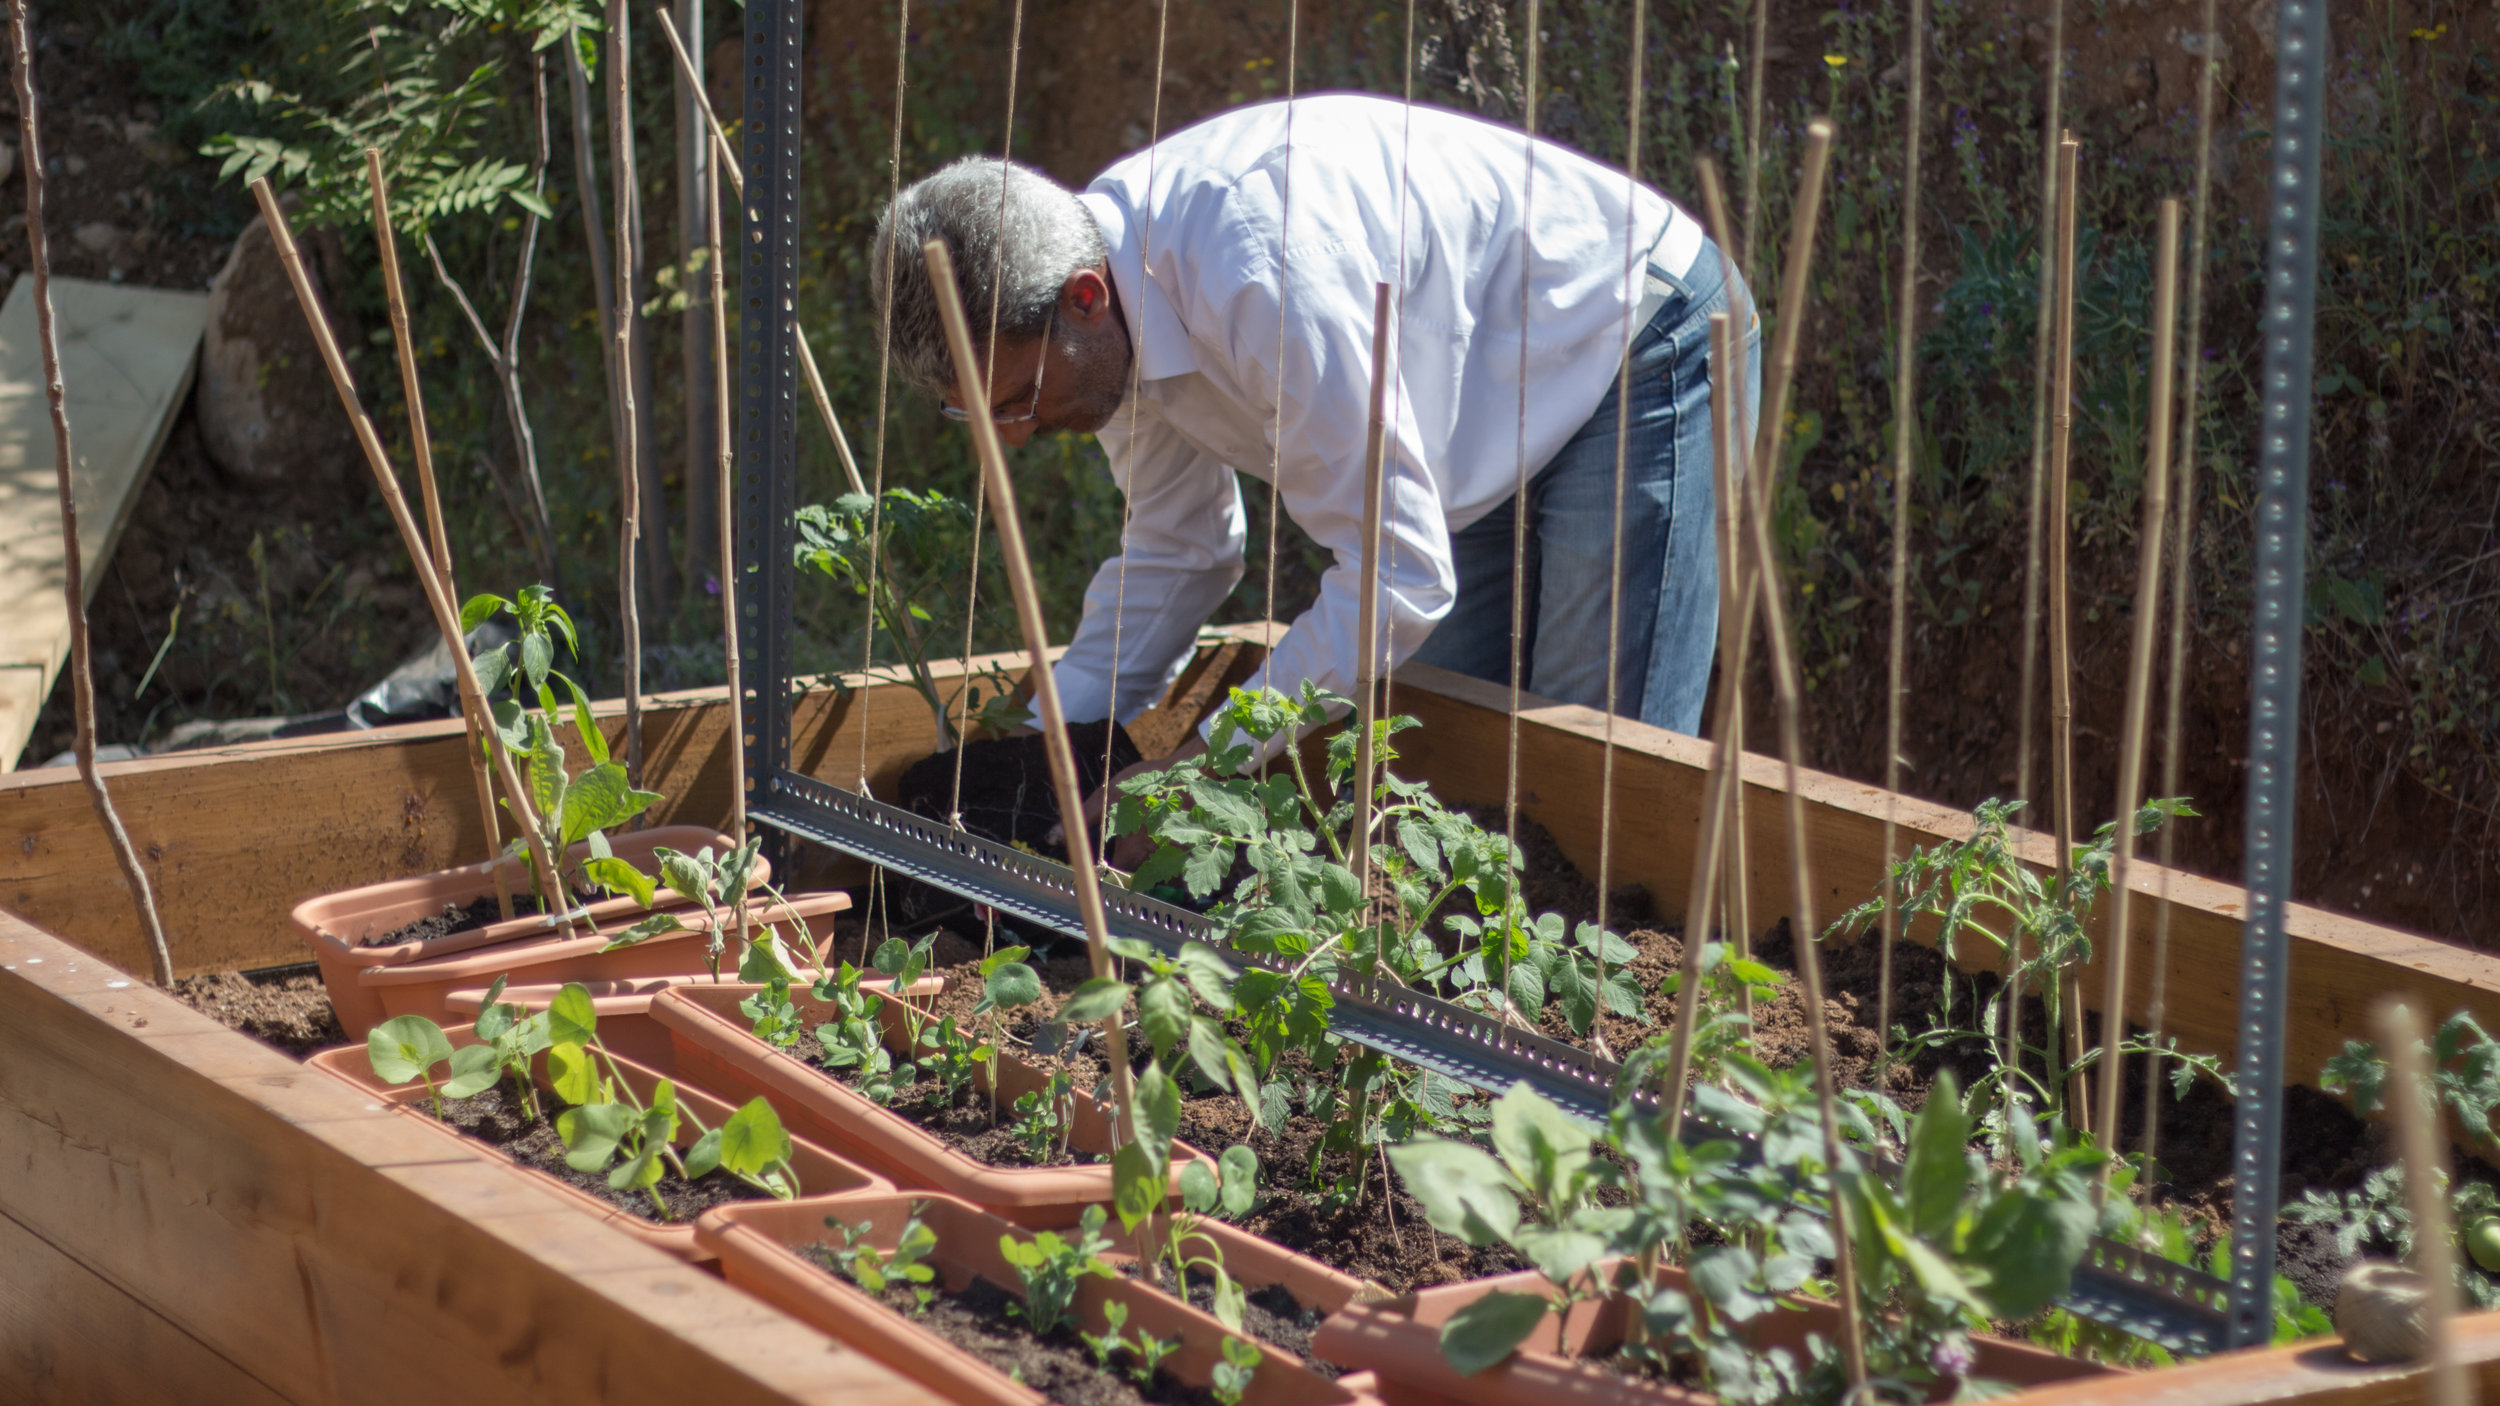 Mousa, one of the residents, planting